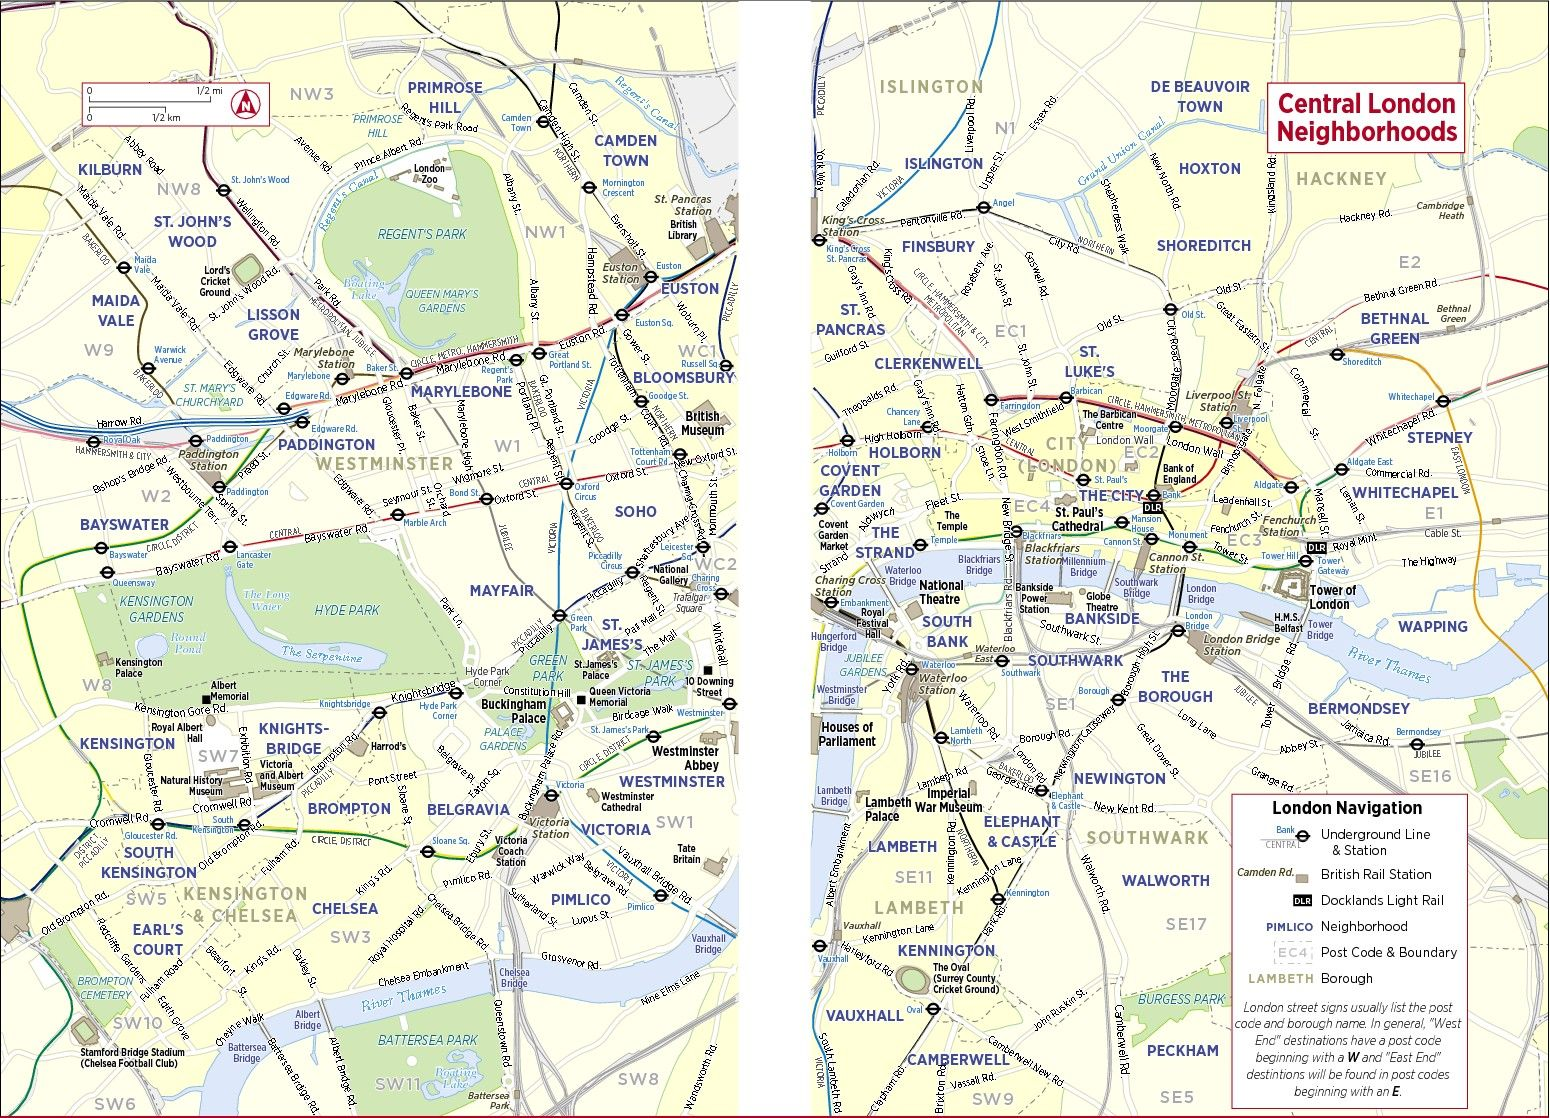 Attractions London Map.Map Of London Neighborhoods And Attractions Afp Cv